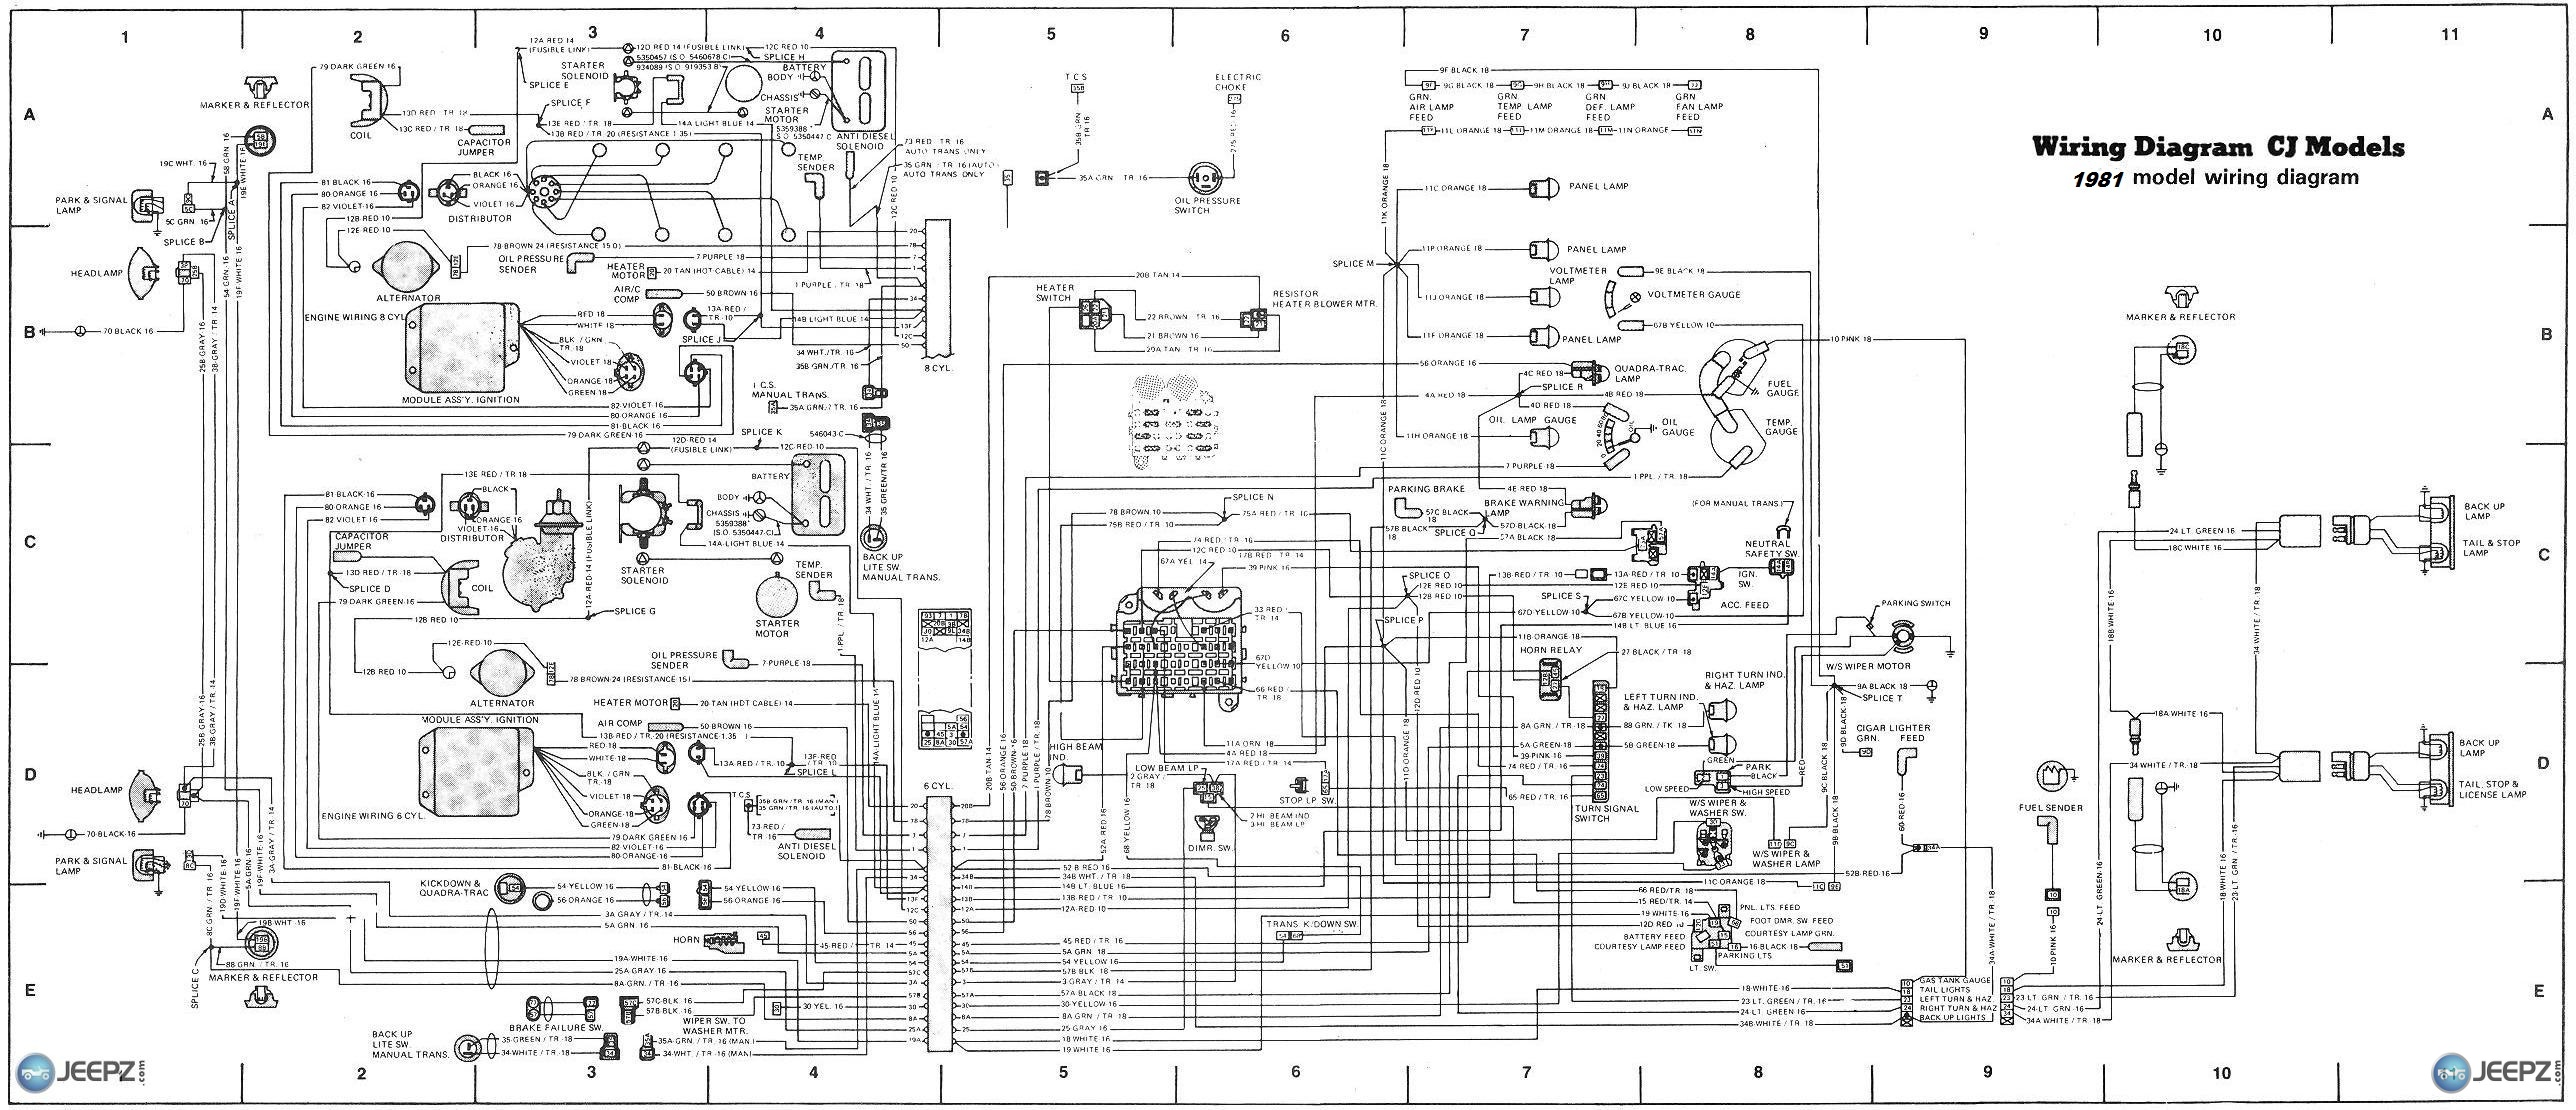 1981 Buick Wiring Diagram Electrical 1984 Diagrams Library Rh 29 Skriptoase De 2011 Lucerne Door